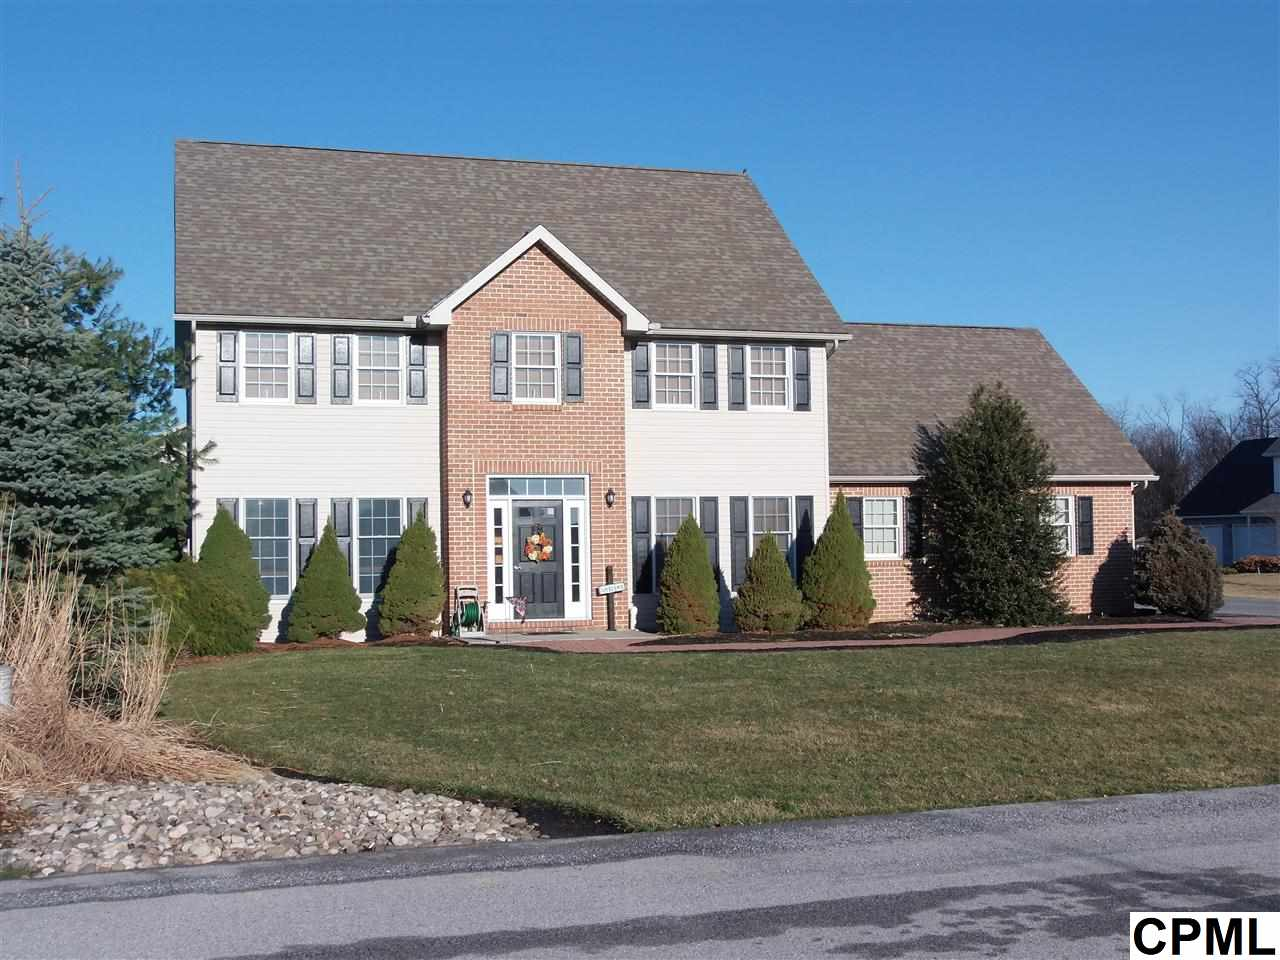 Rental Homes for Rent, ListingId:30710402, location: 271 Chestnut Dr Shippensburg 17257